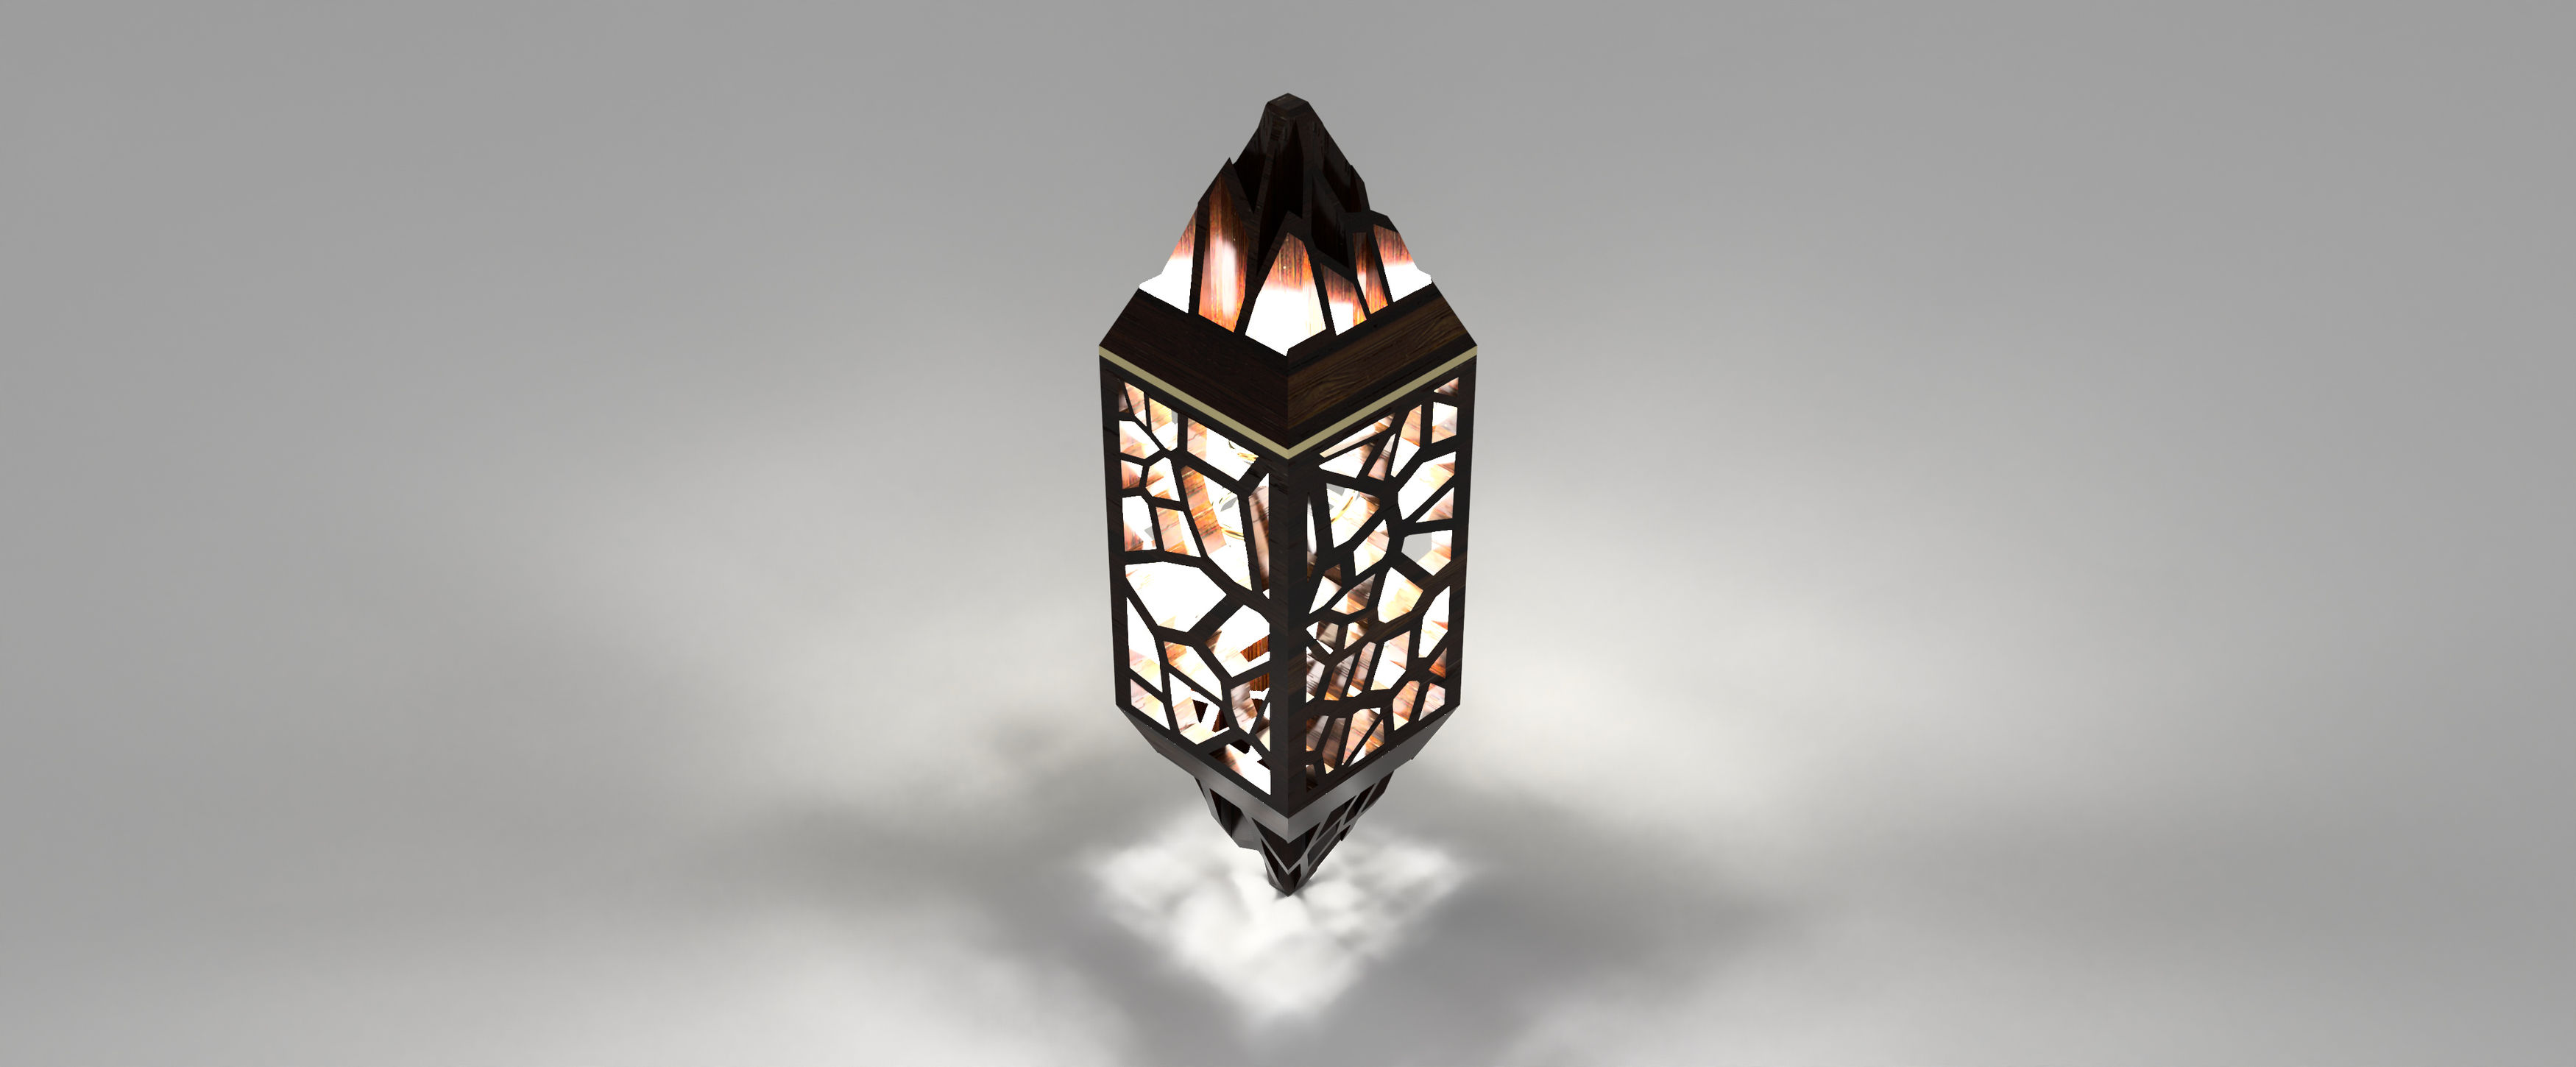 laternas sveces gane on by pin pinterest more lamp linda models and un arabic explore veck lamps